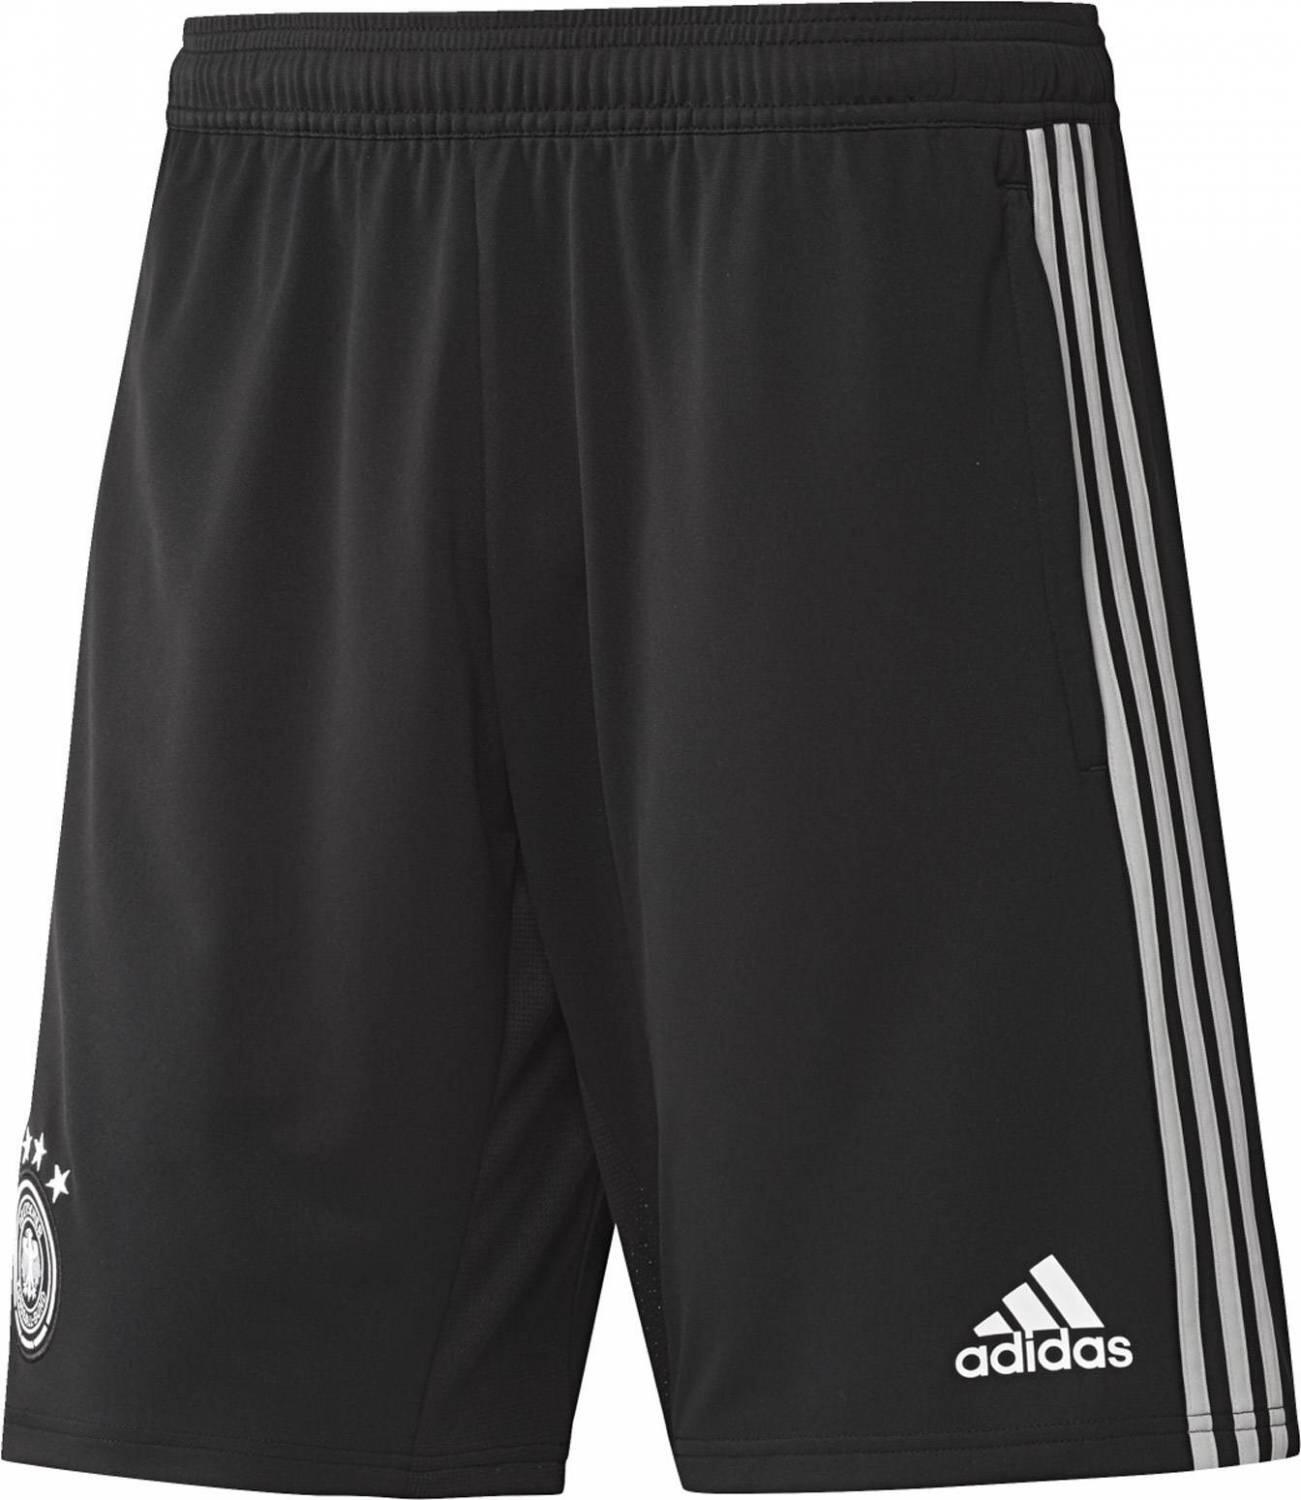 adidas DFB Training Short WM 2018